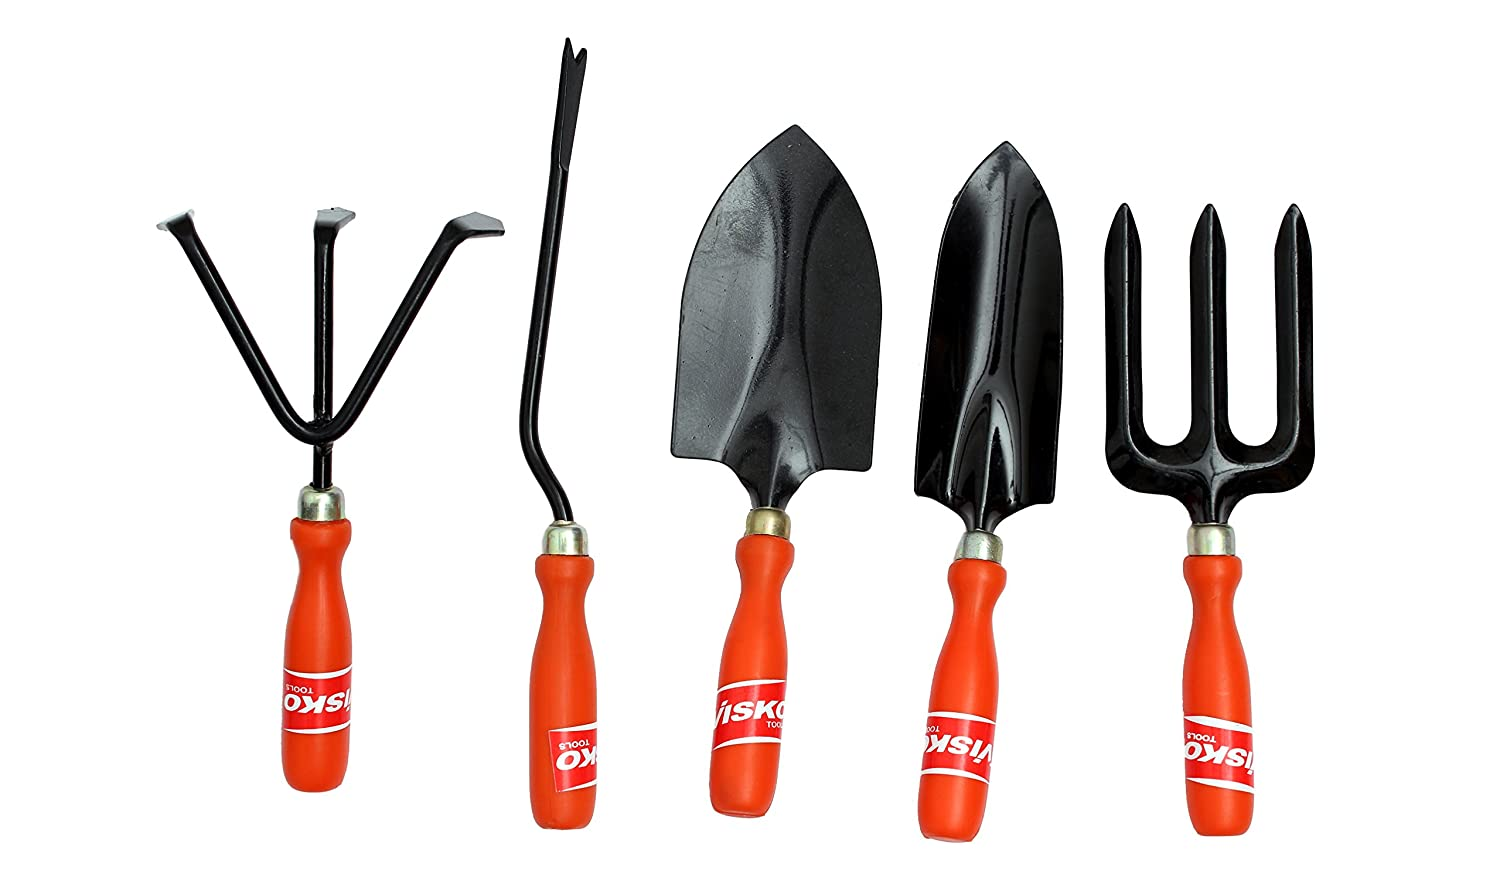 Visko tools 601 garden tool kit pack of 5 rs 277 flipkart for Gardening tools on amazon